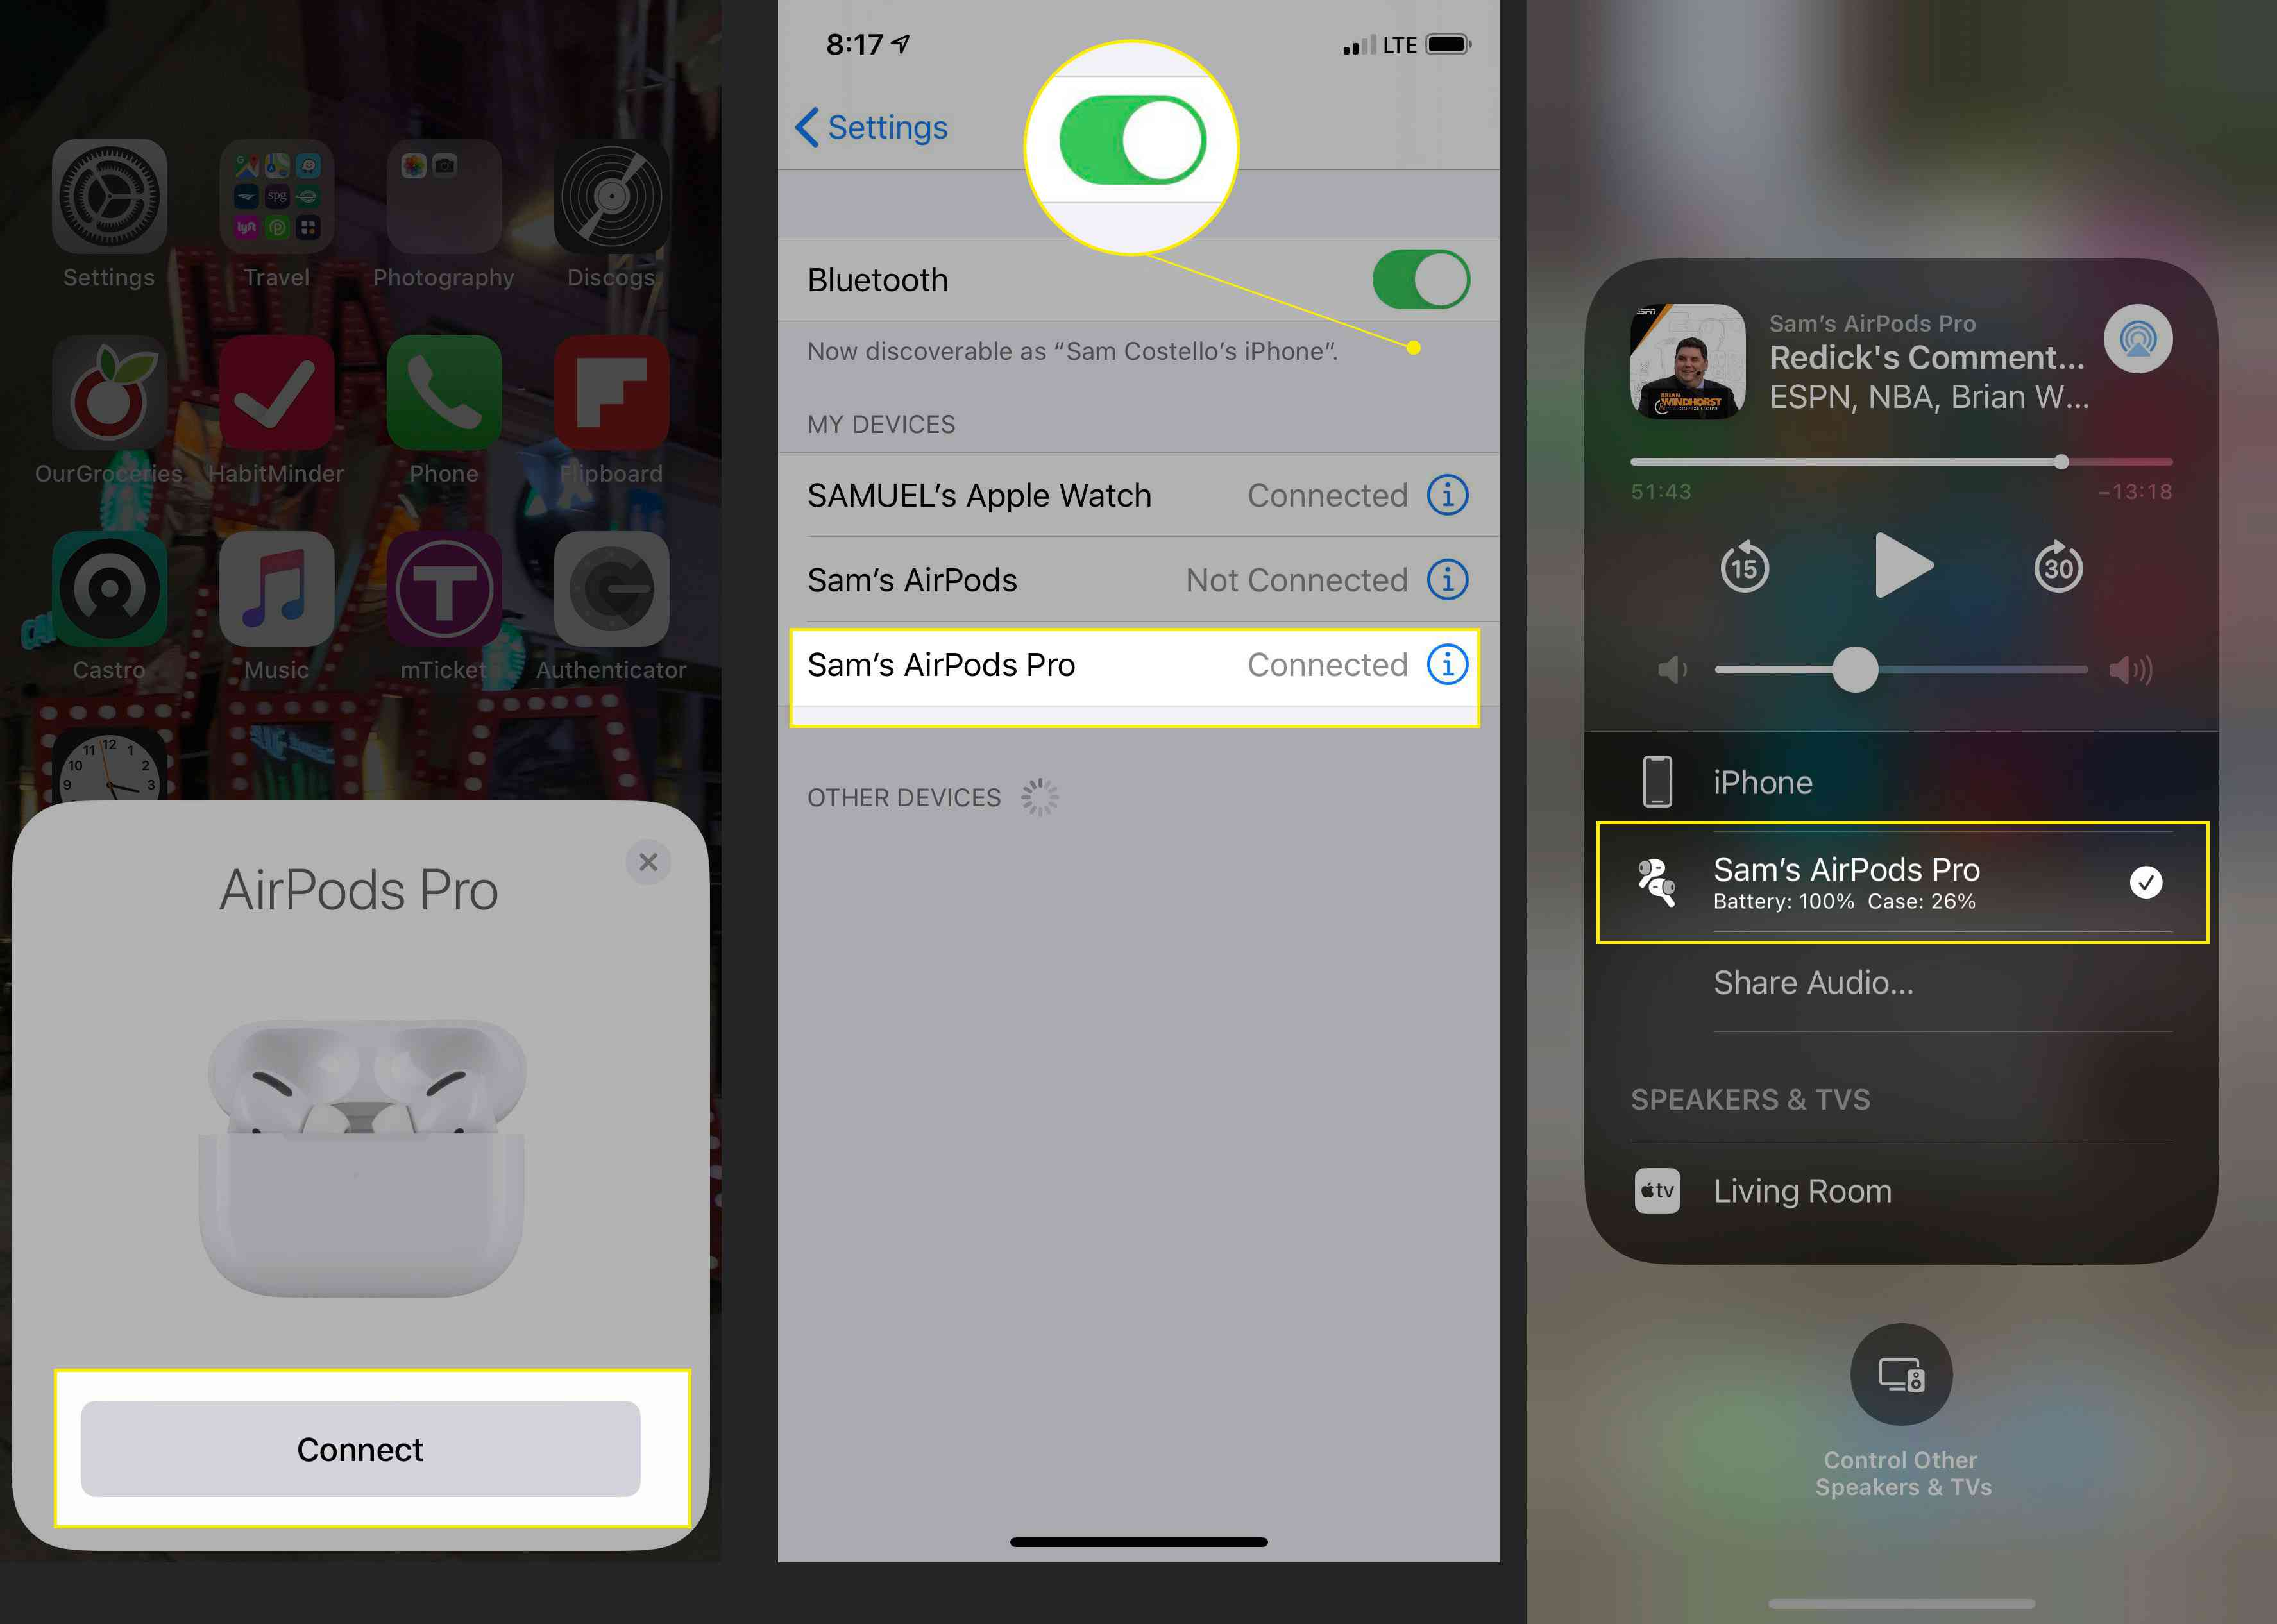 Pairing AirPods Pro with an iPhone with